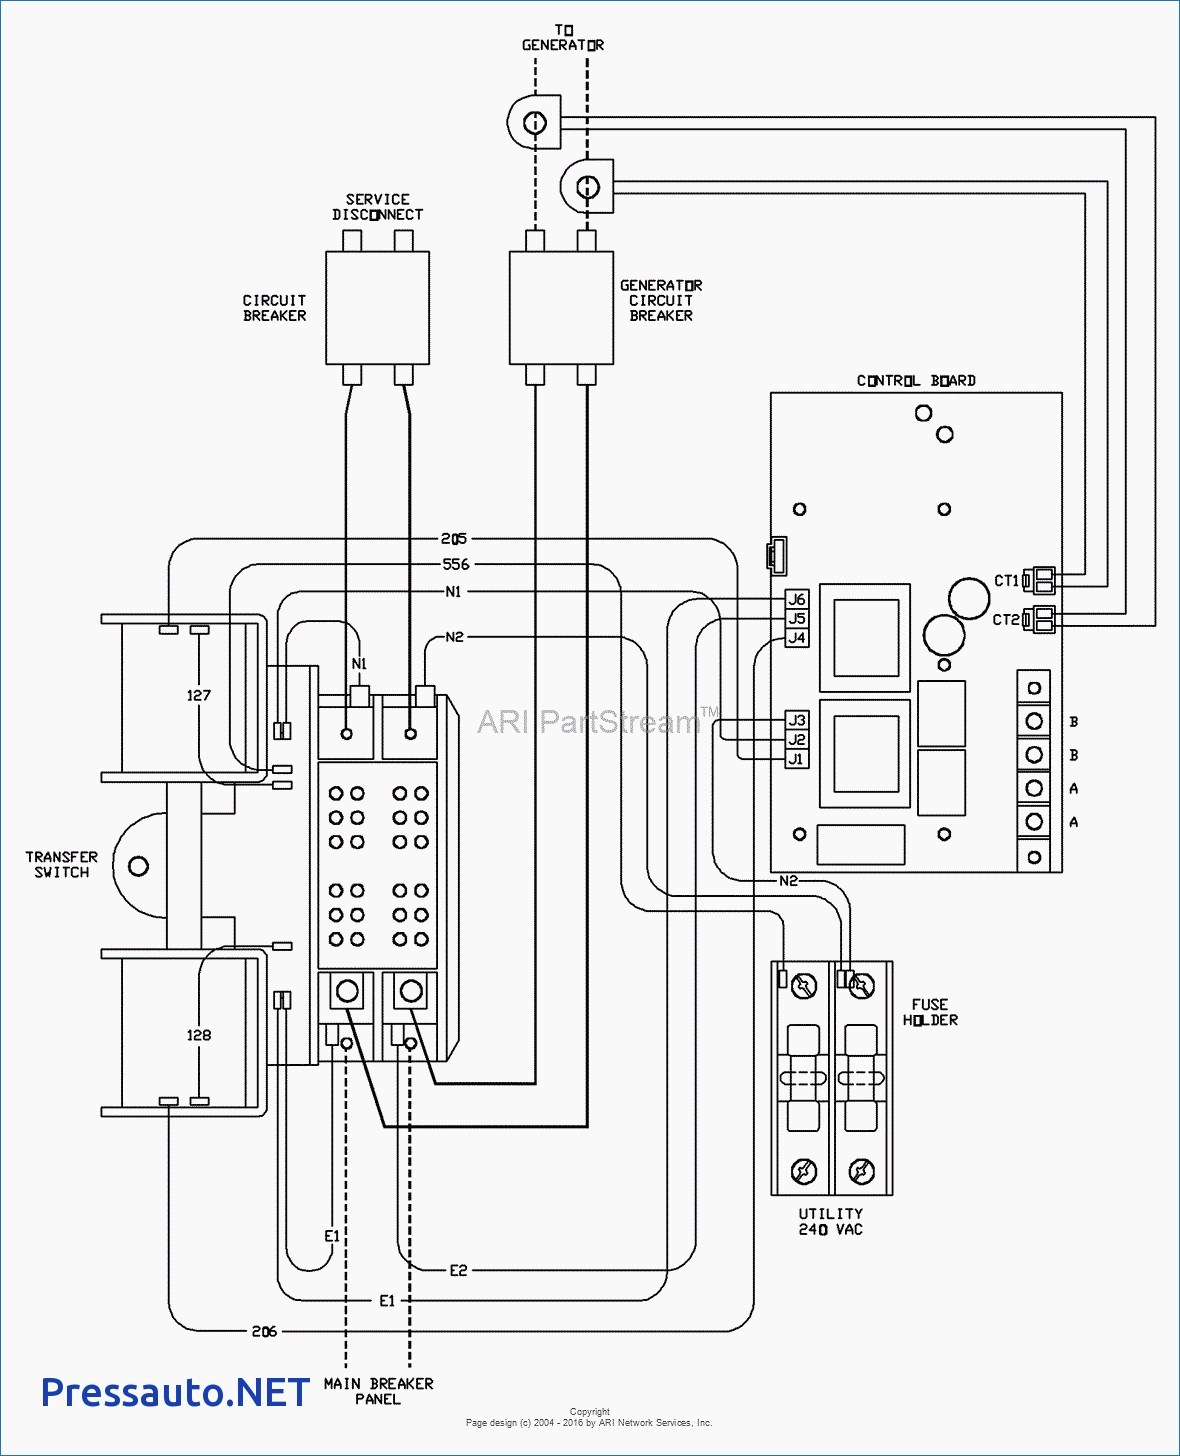 generac whole house transfer switch wiring diagram Download-Whole House Generator Transfer Switch Wiring Diagram whole House Transfer Switch Wiring Diagram Beautiful Generator 10-c